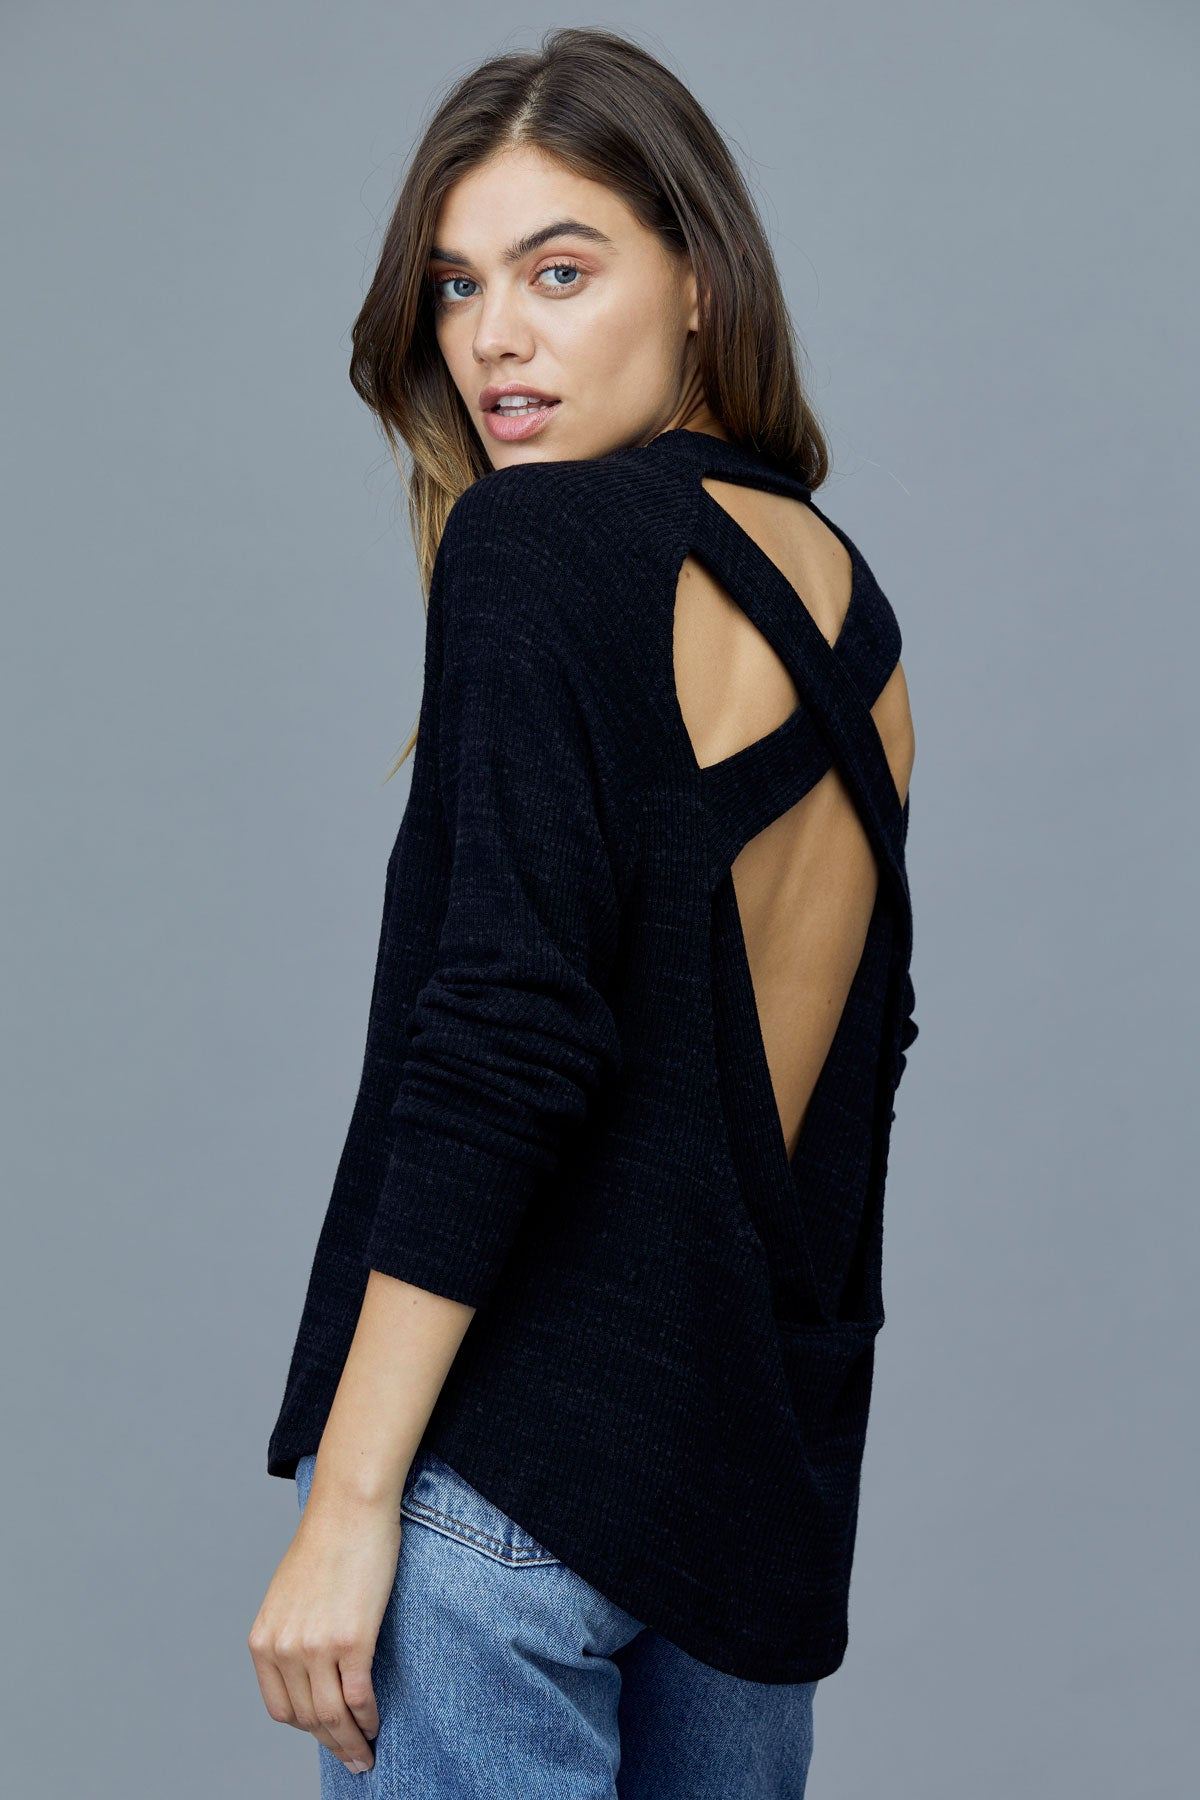 LNA Francis Cross Back Slub Sweater in Black Heather